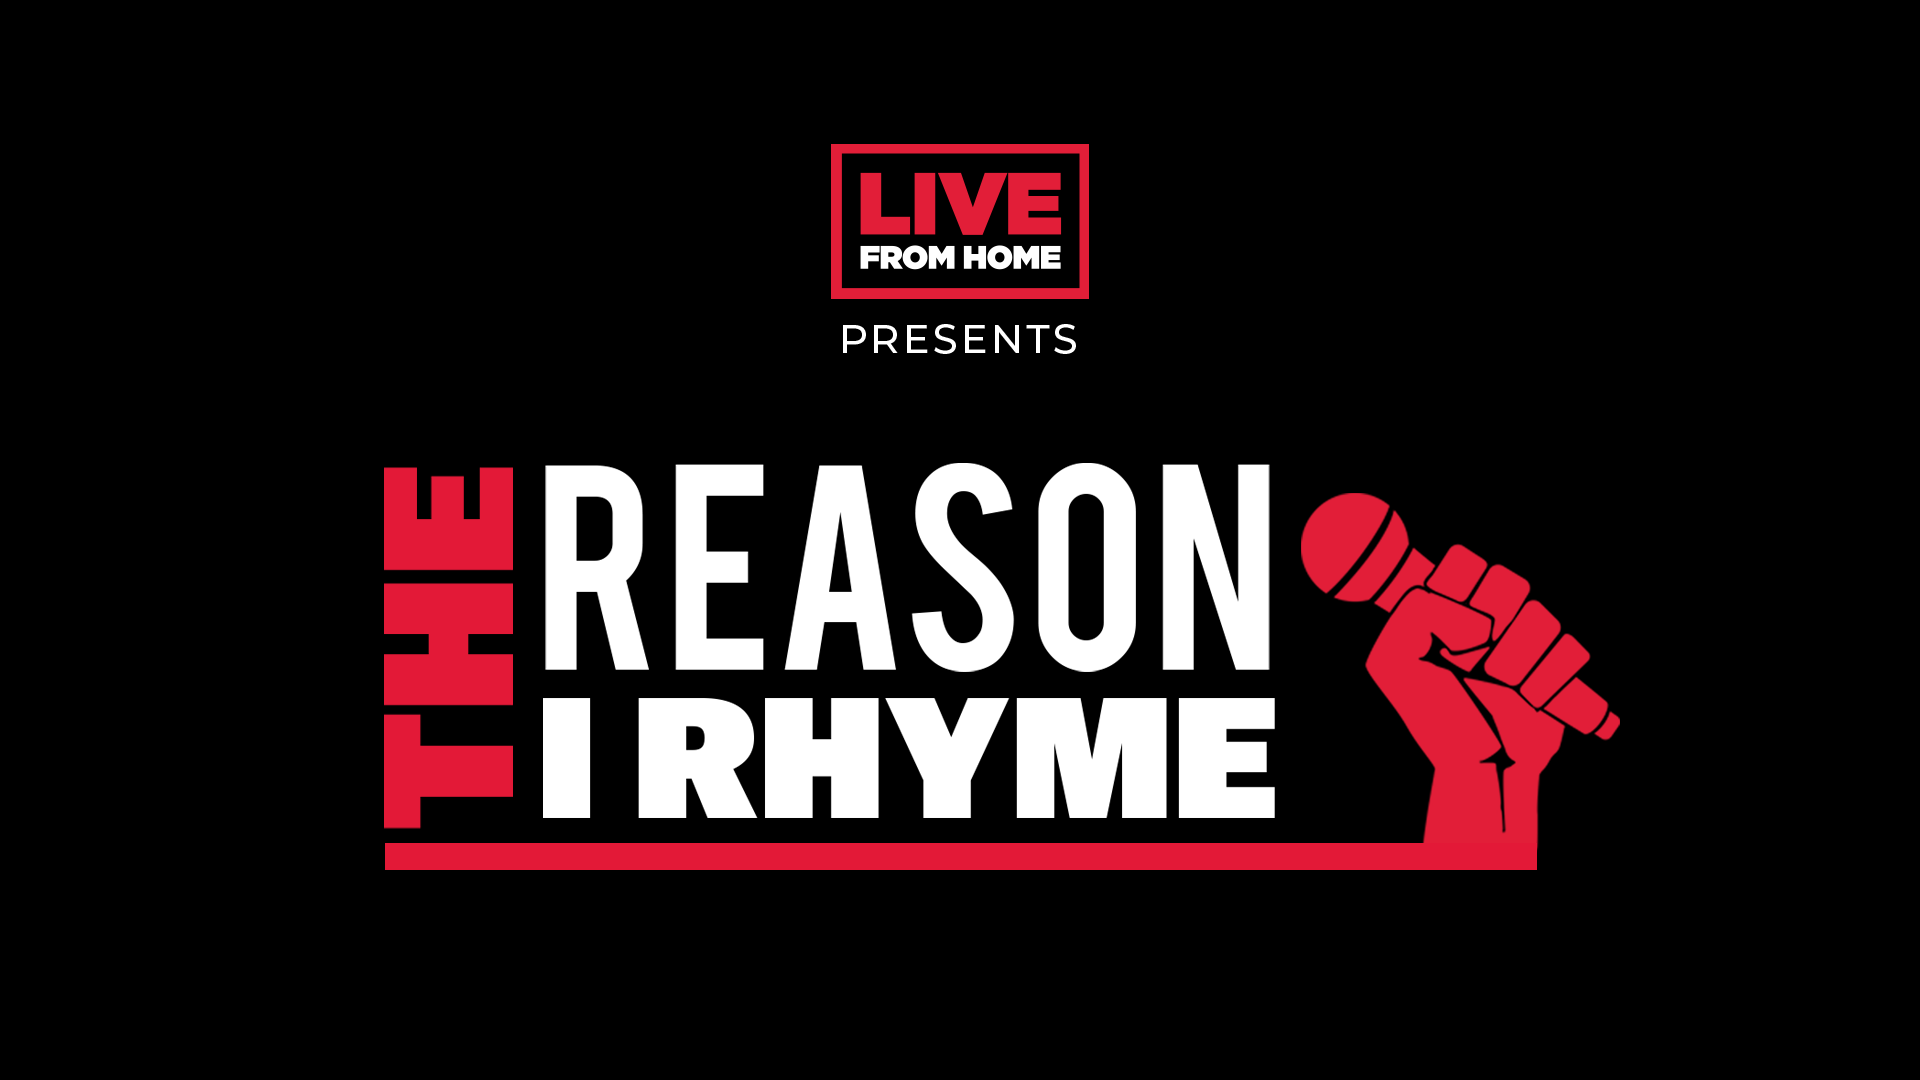 The Reason I Rhyme